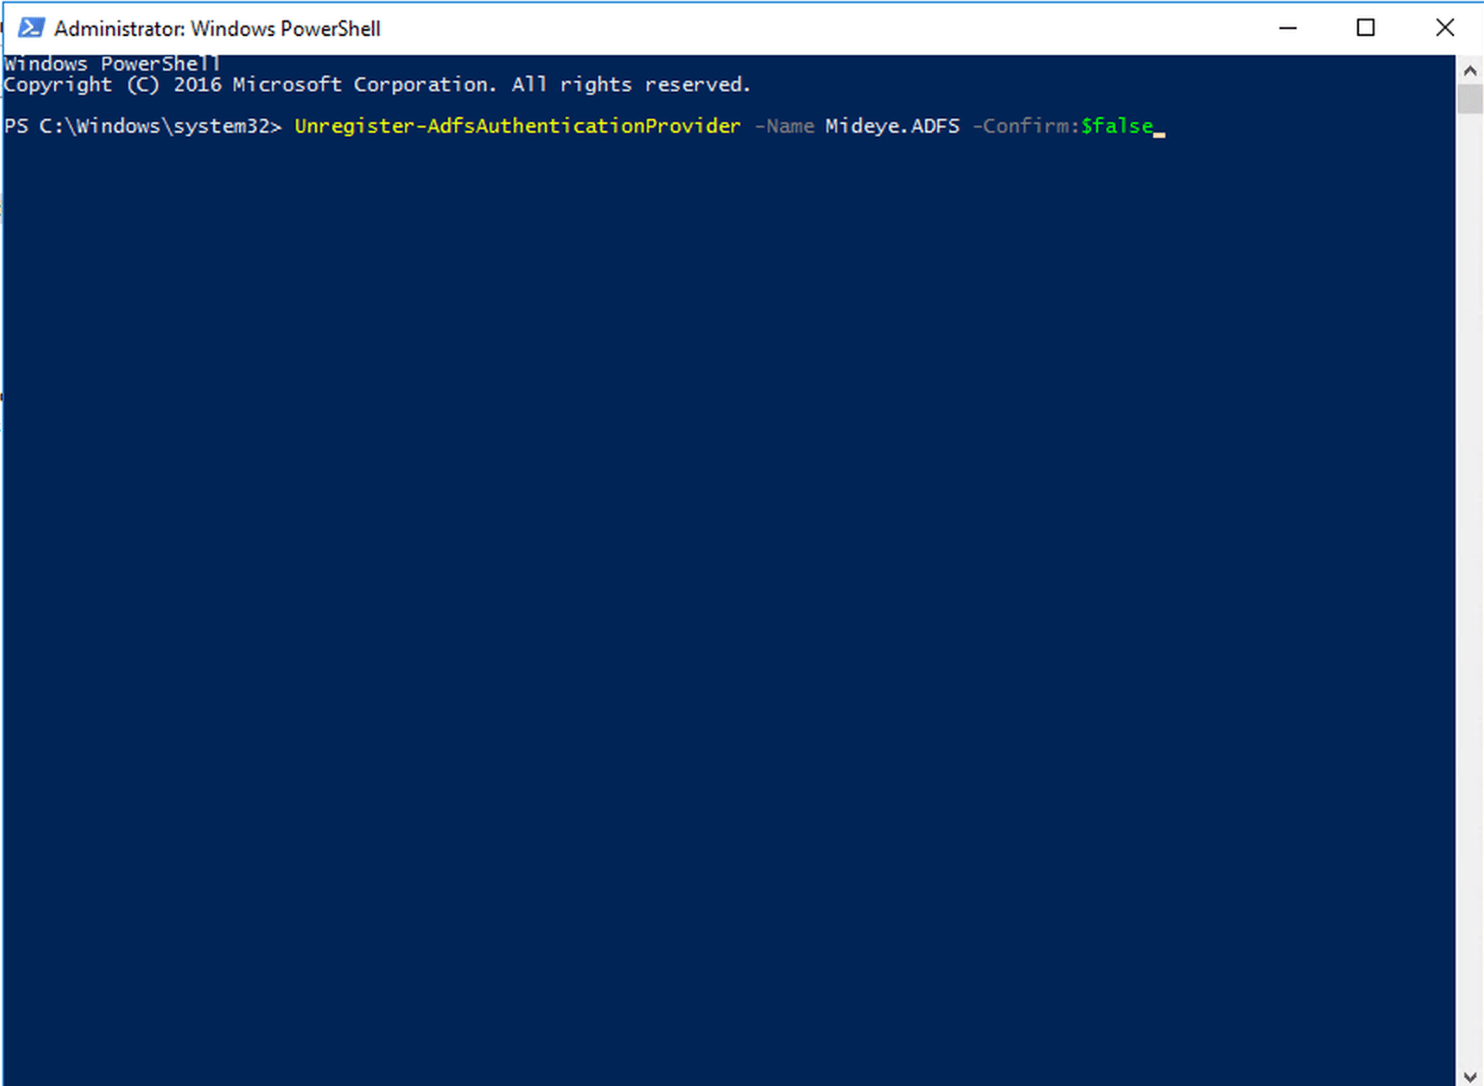 To make sure that all register keys are removed from any older versions, open Powershell as an administrator and typeUnregister-AdfsAuthenticationProvider -Name Mideye.ADFS -Confirm:$false